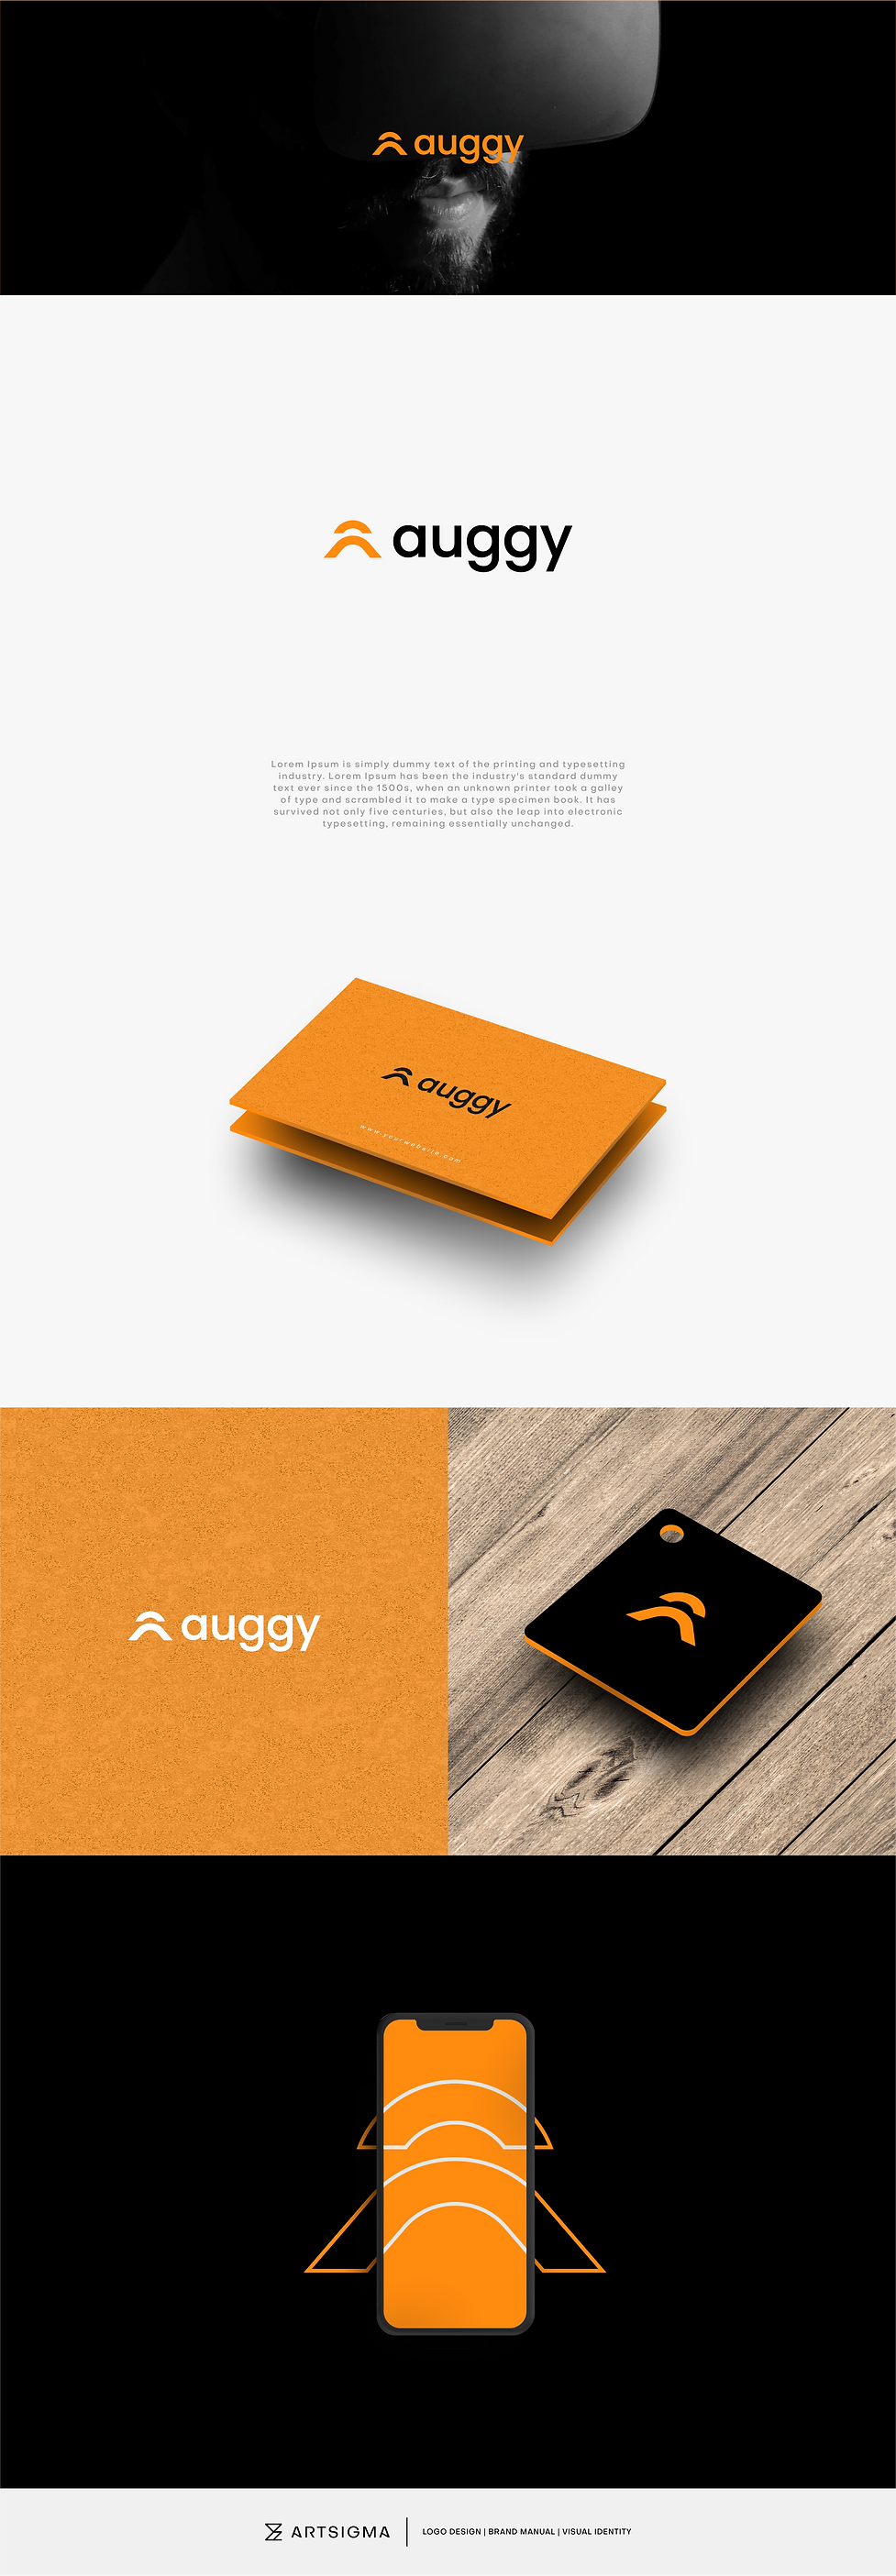 auggy 2.png